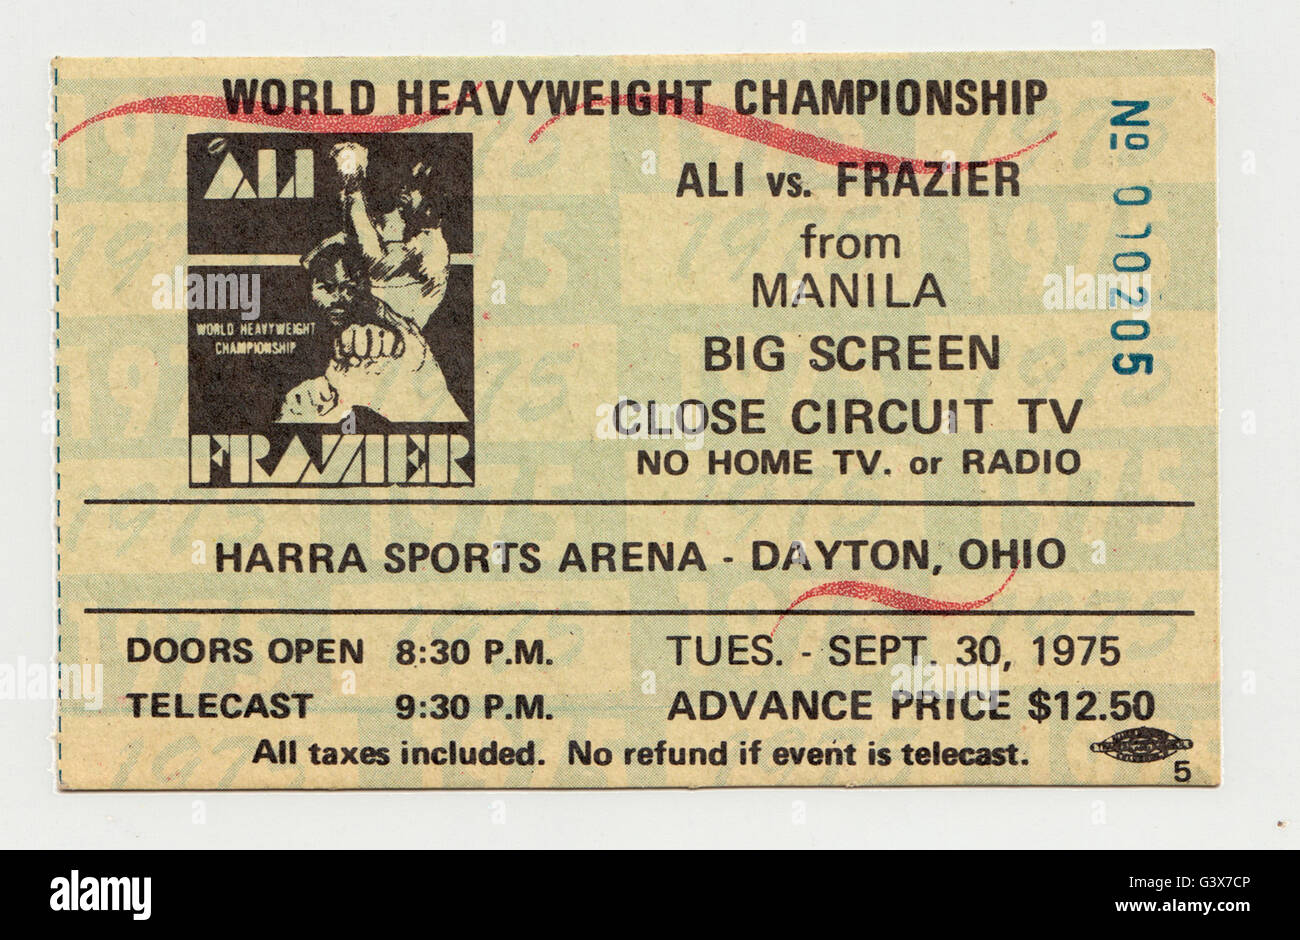 A 1975 ticket stub to a closed circuit TV viewing of the THRILLA IN MANILA boxing match between Muhammad Ali & - Stock Image